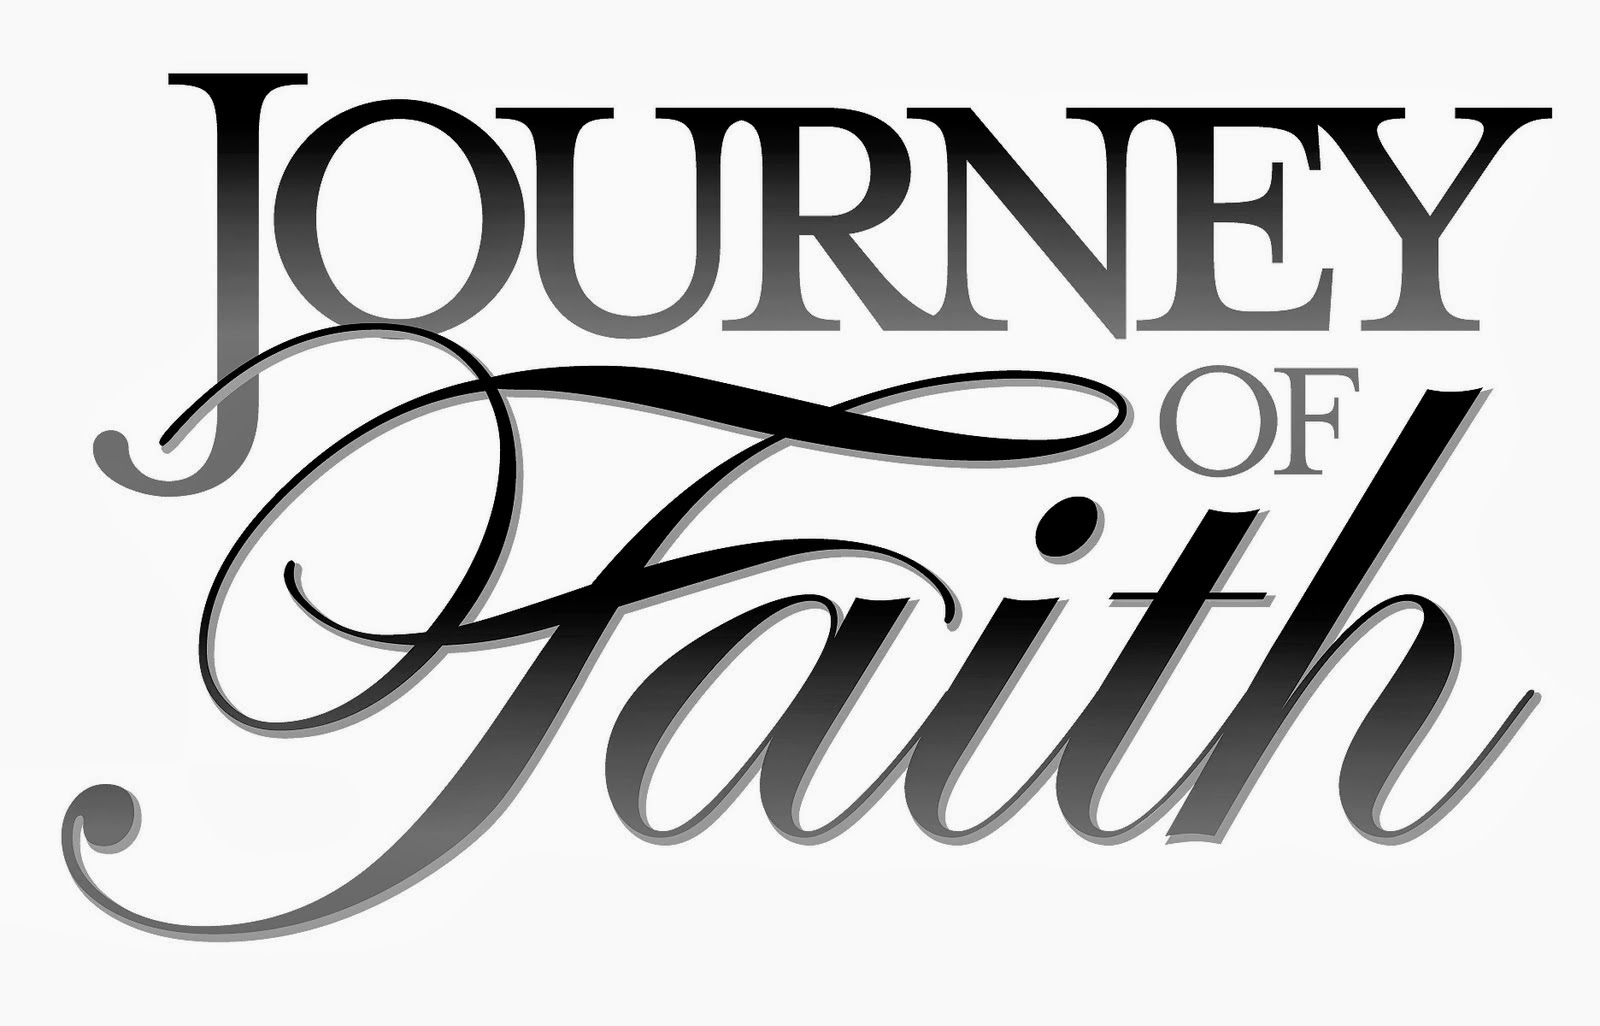 Faith and family night clipart black and white banner transparent download Christian Family Clipart | Free download best Christian Family ... banner transparent download